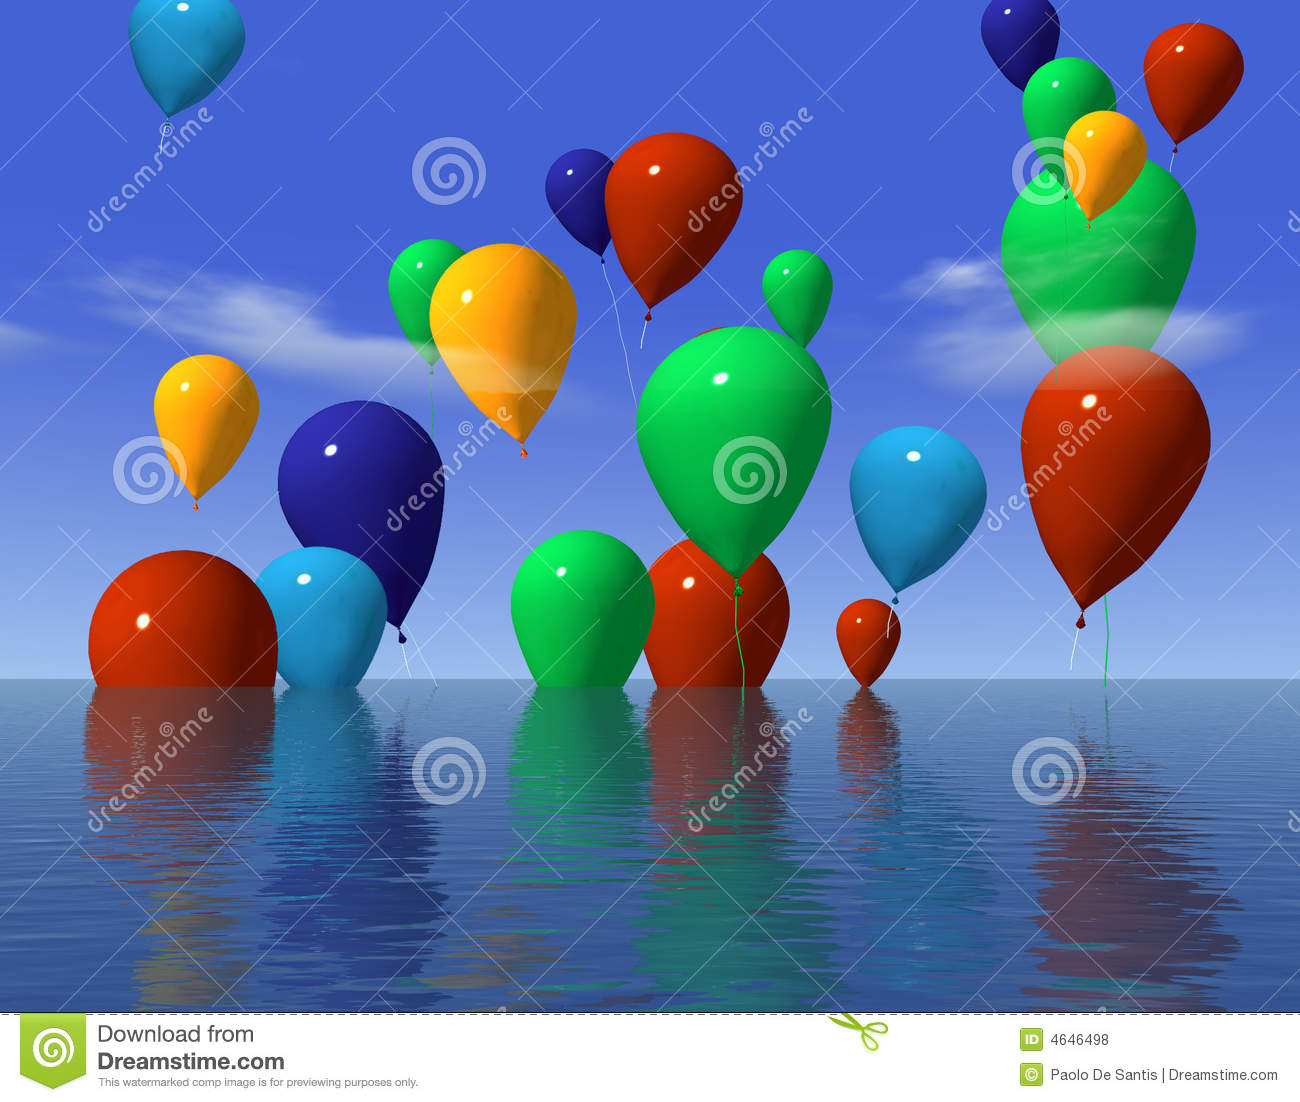 Ballons In Water Royalty Free Stock Photos - Image: 4646498